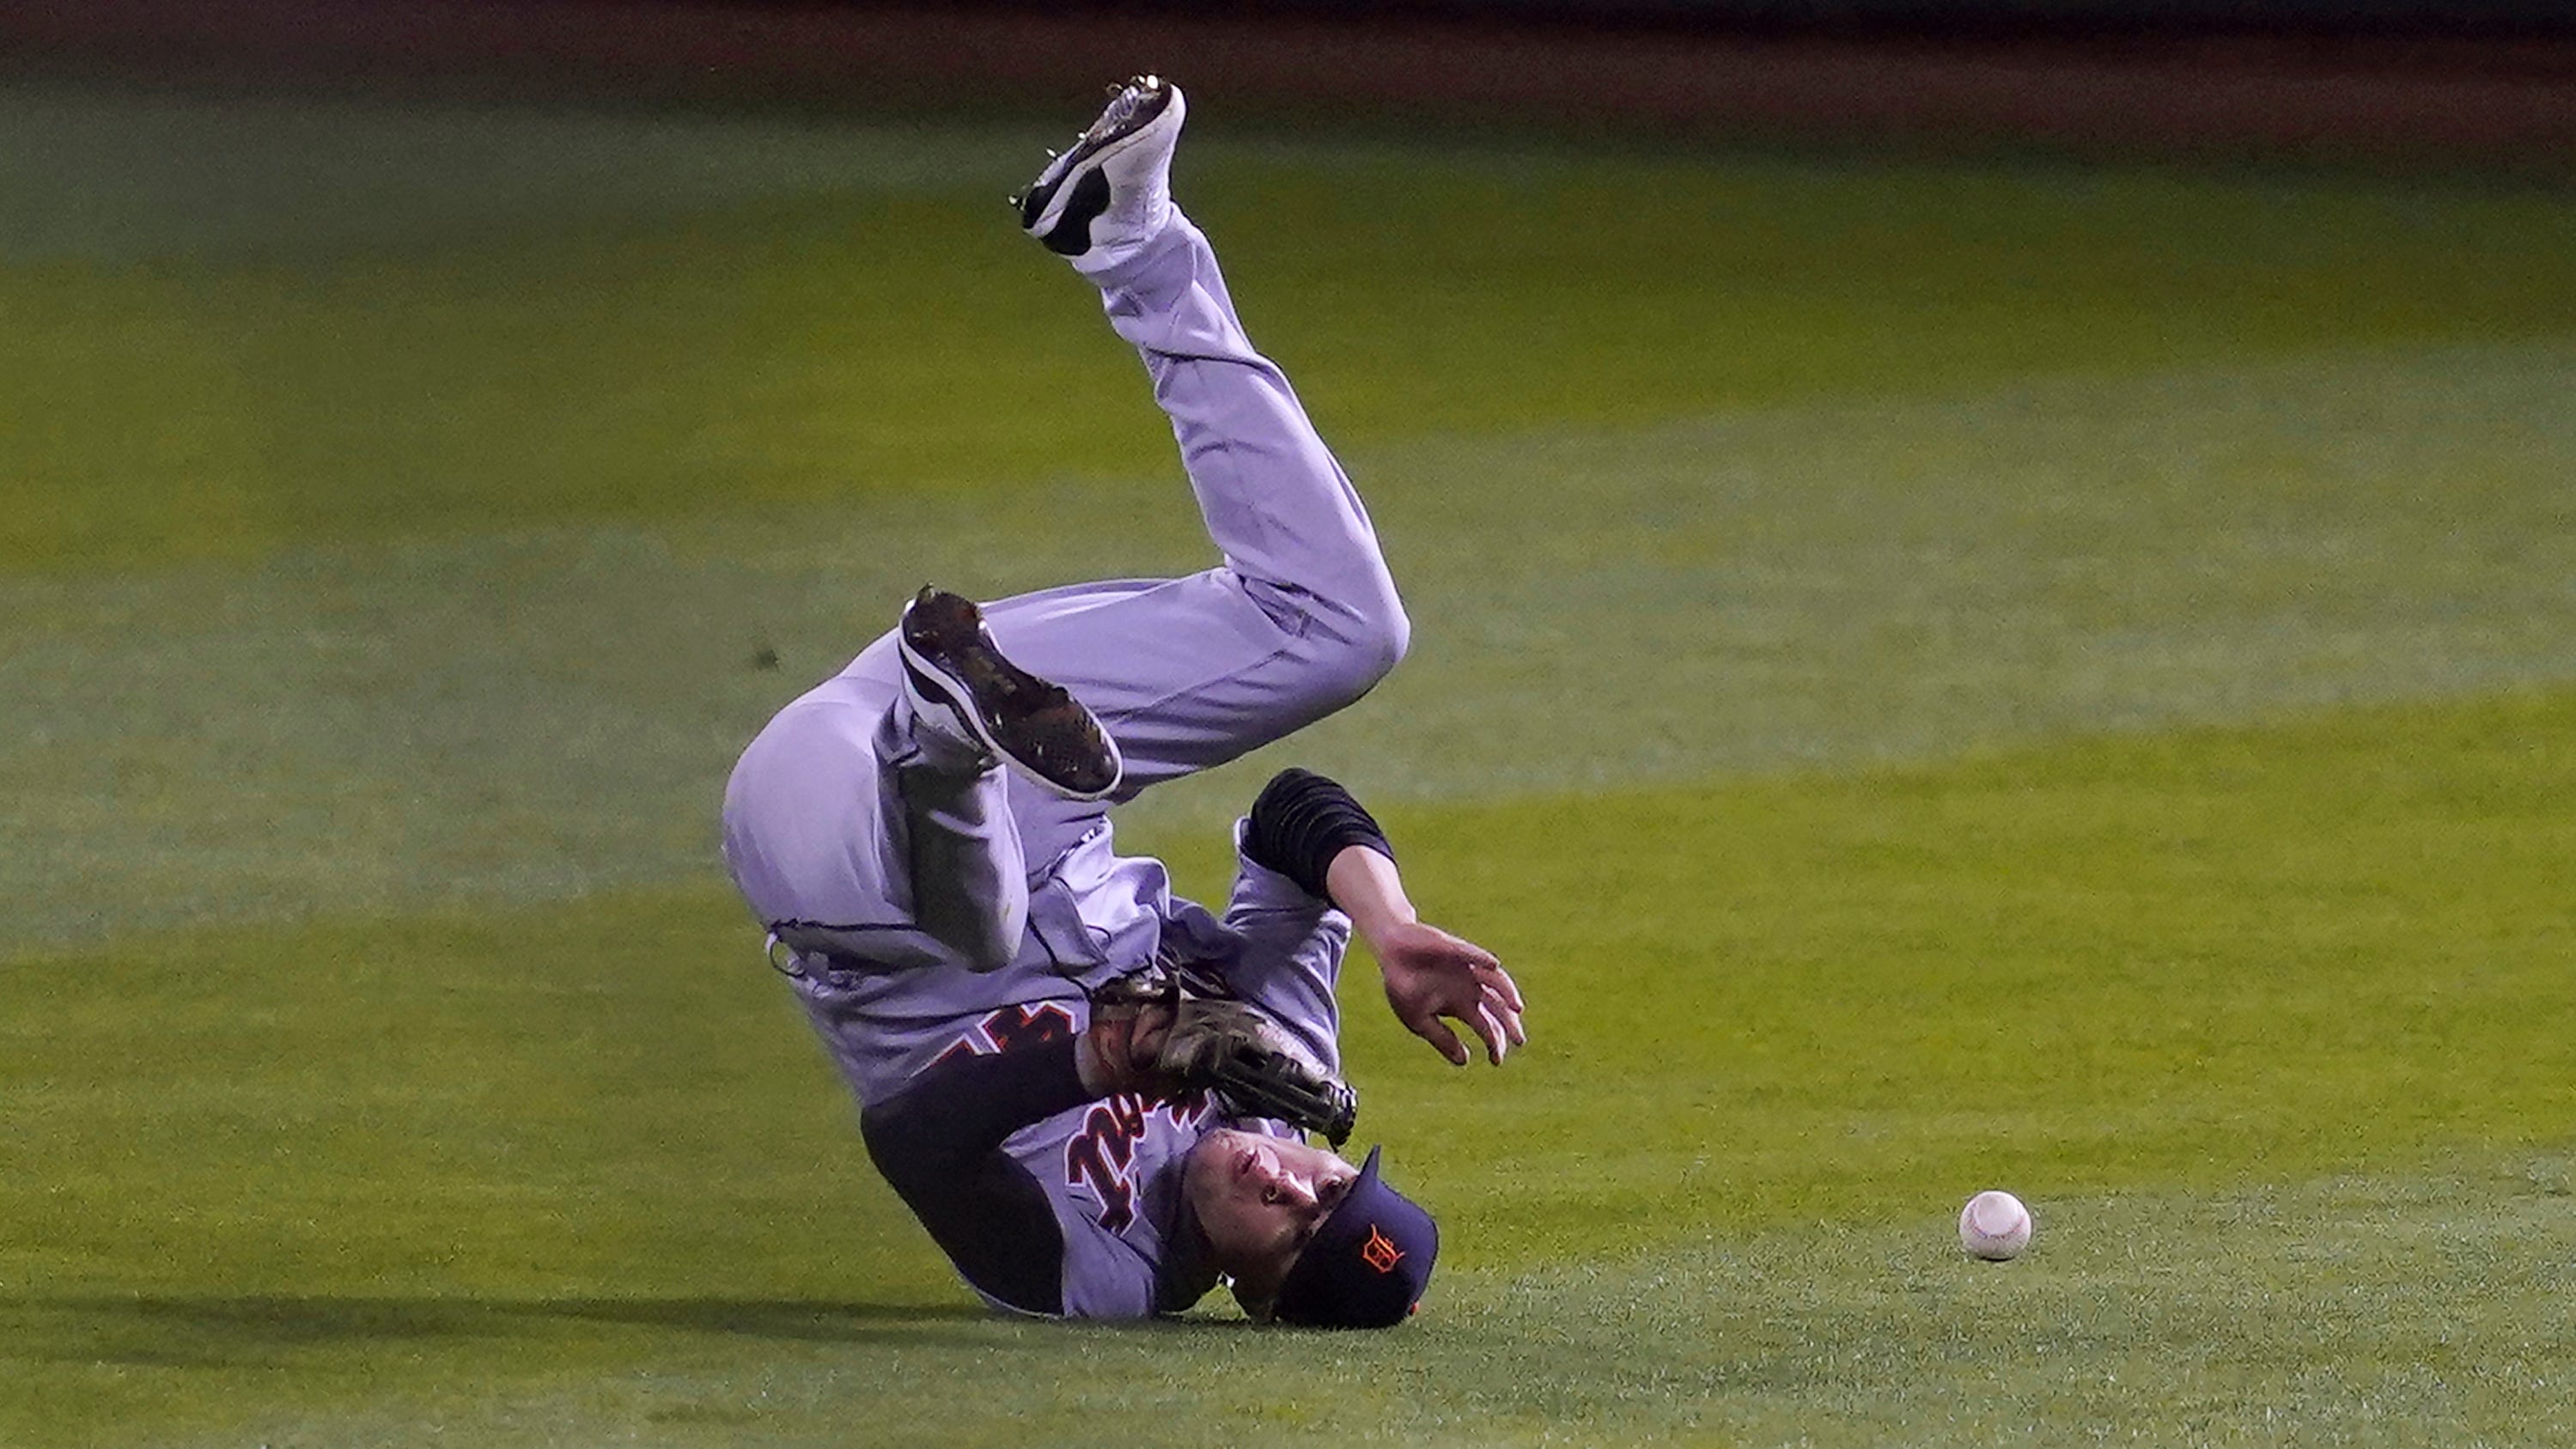 Detroit Tigers center fielder JaCoby Jones cannot catch a base hit by Oakland Athletics' Mark Canha during the seventh inning in Oakland on Thursday, April 15, 2021.